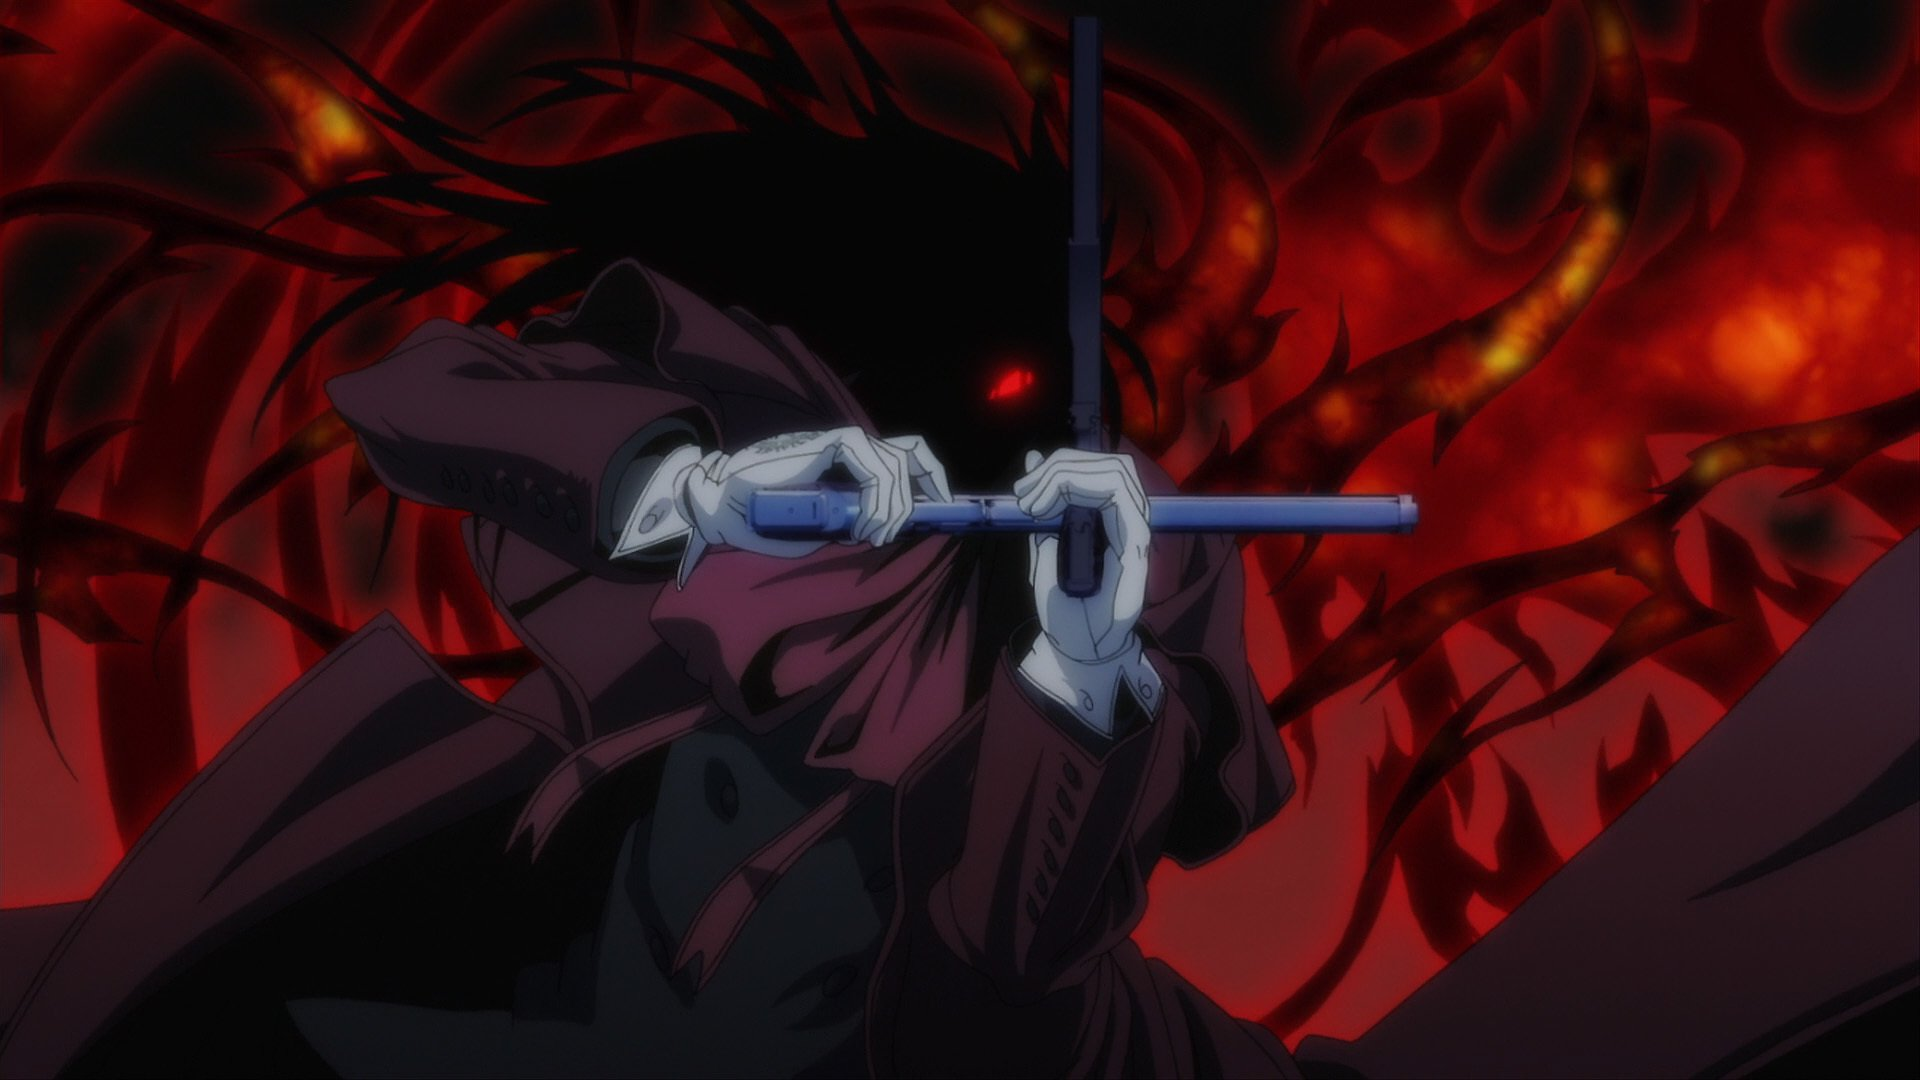 Ideal Hellsing police girl nude are